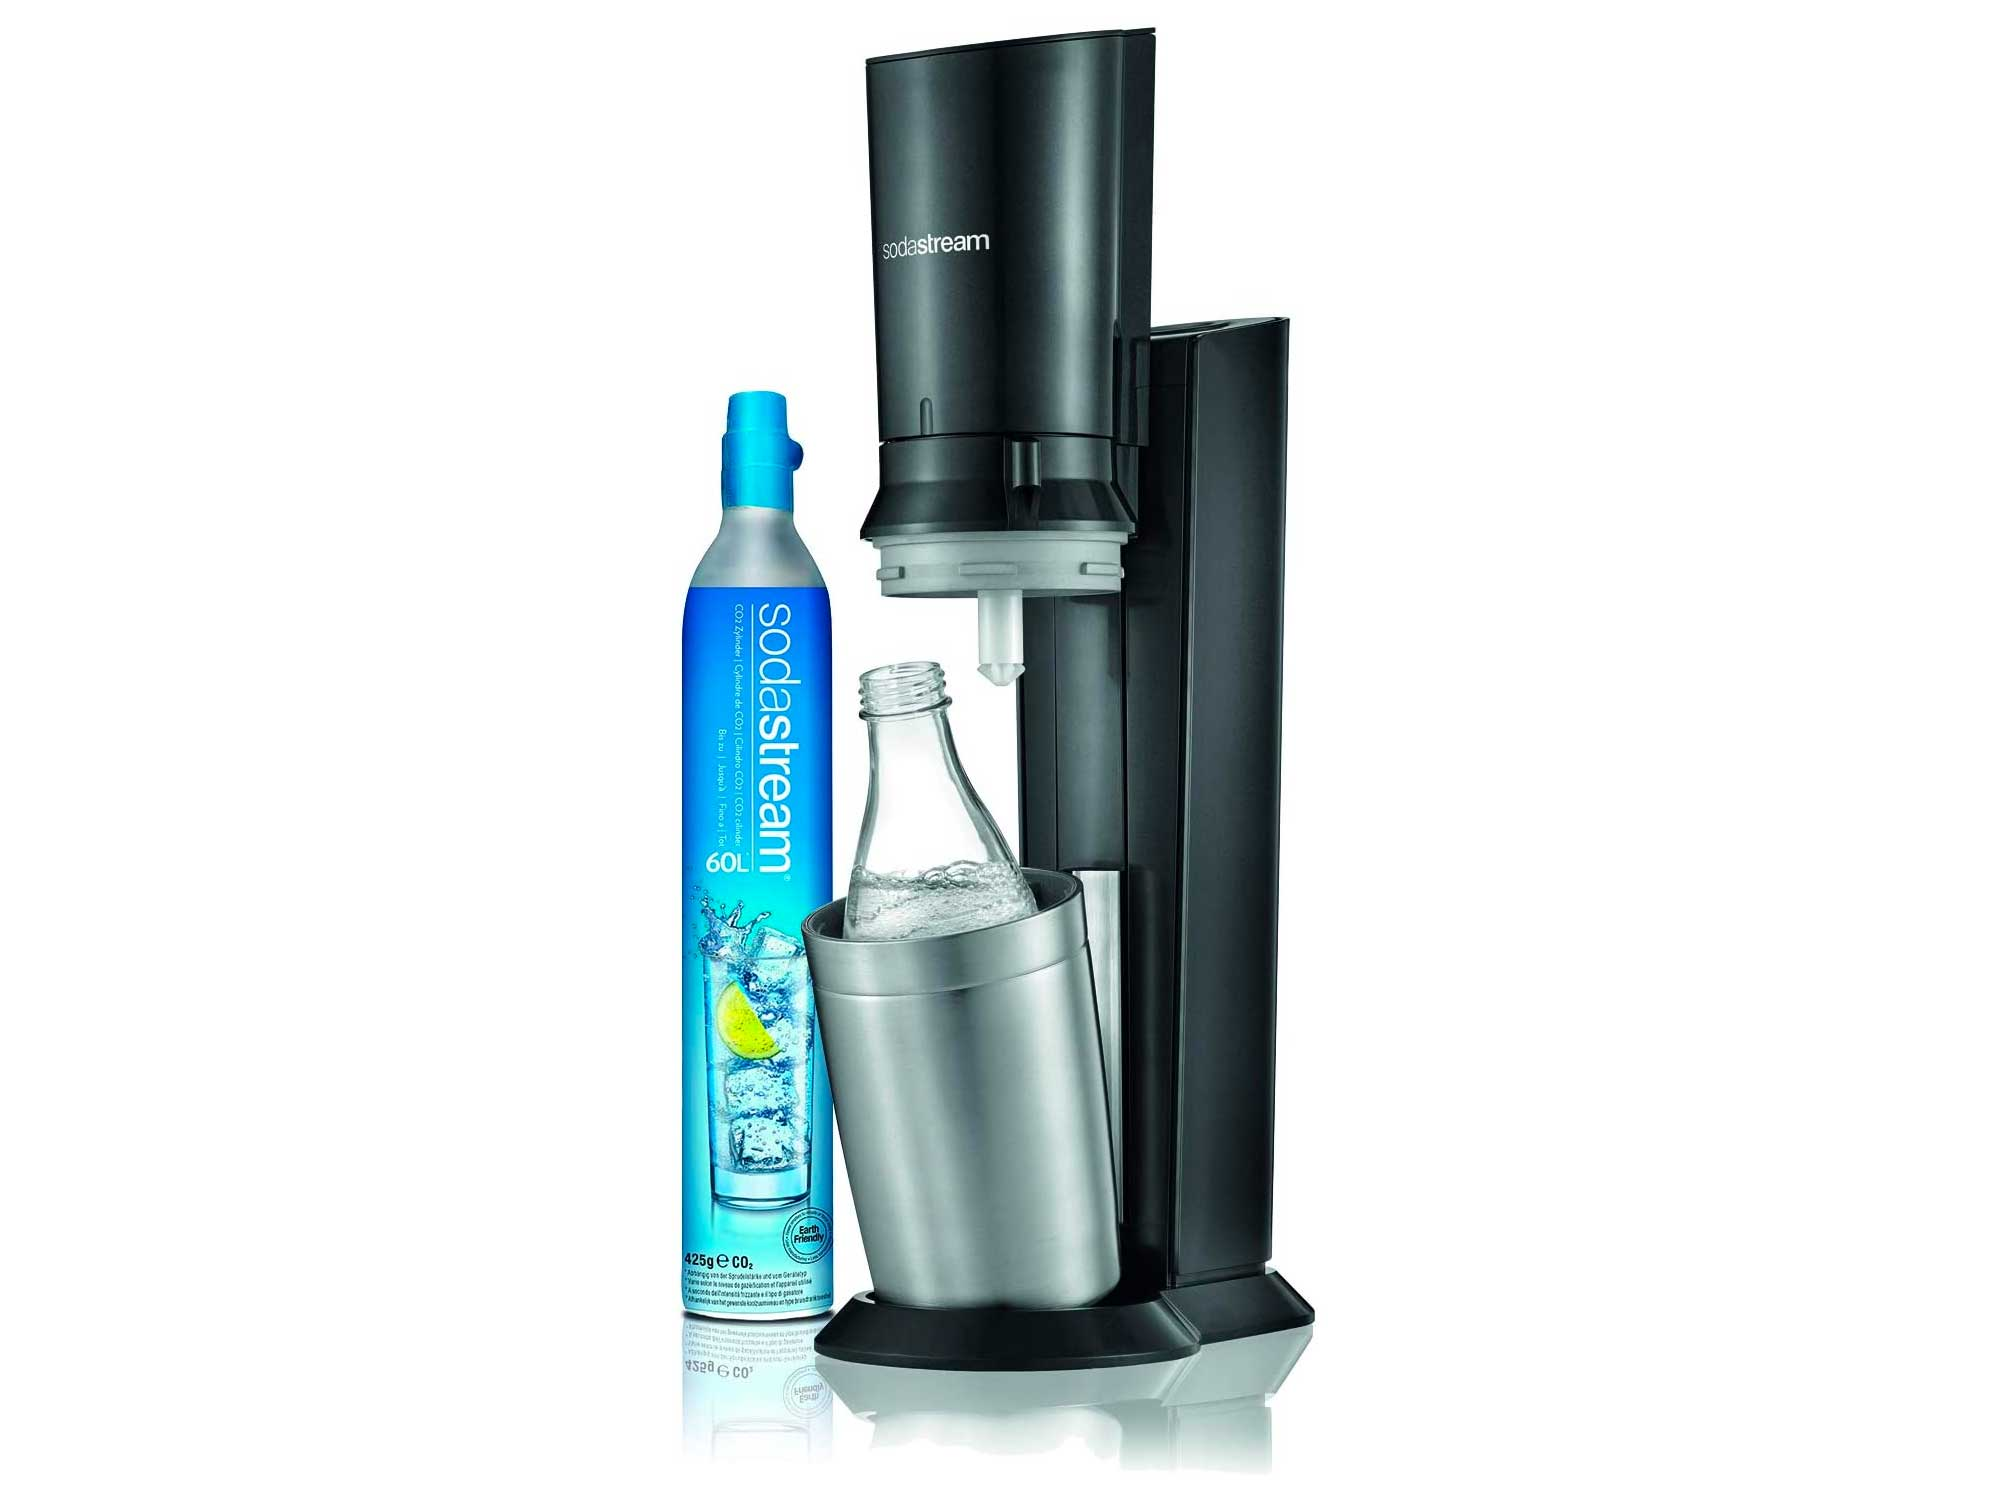 SodaStream Crystal Sparkling Water Maker with Reusable Glass Bottle, Refillable Carbonated Fizzy Water Maker, 0.6 L Carafe with 60 L CO2 Cylinder